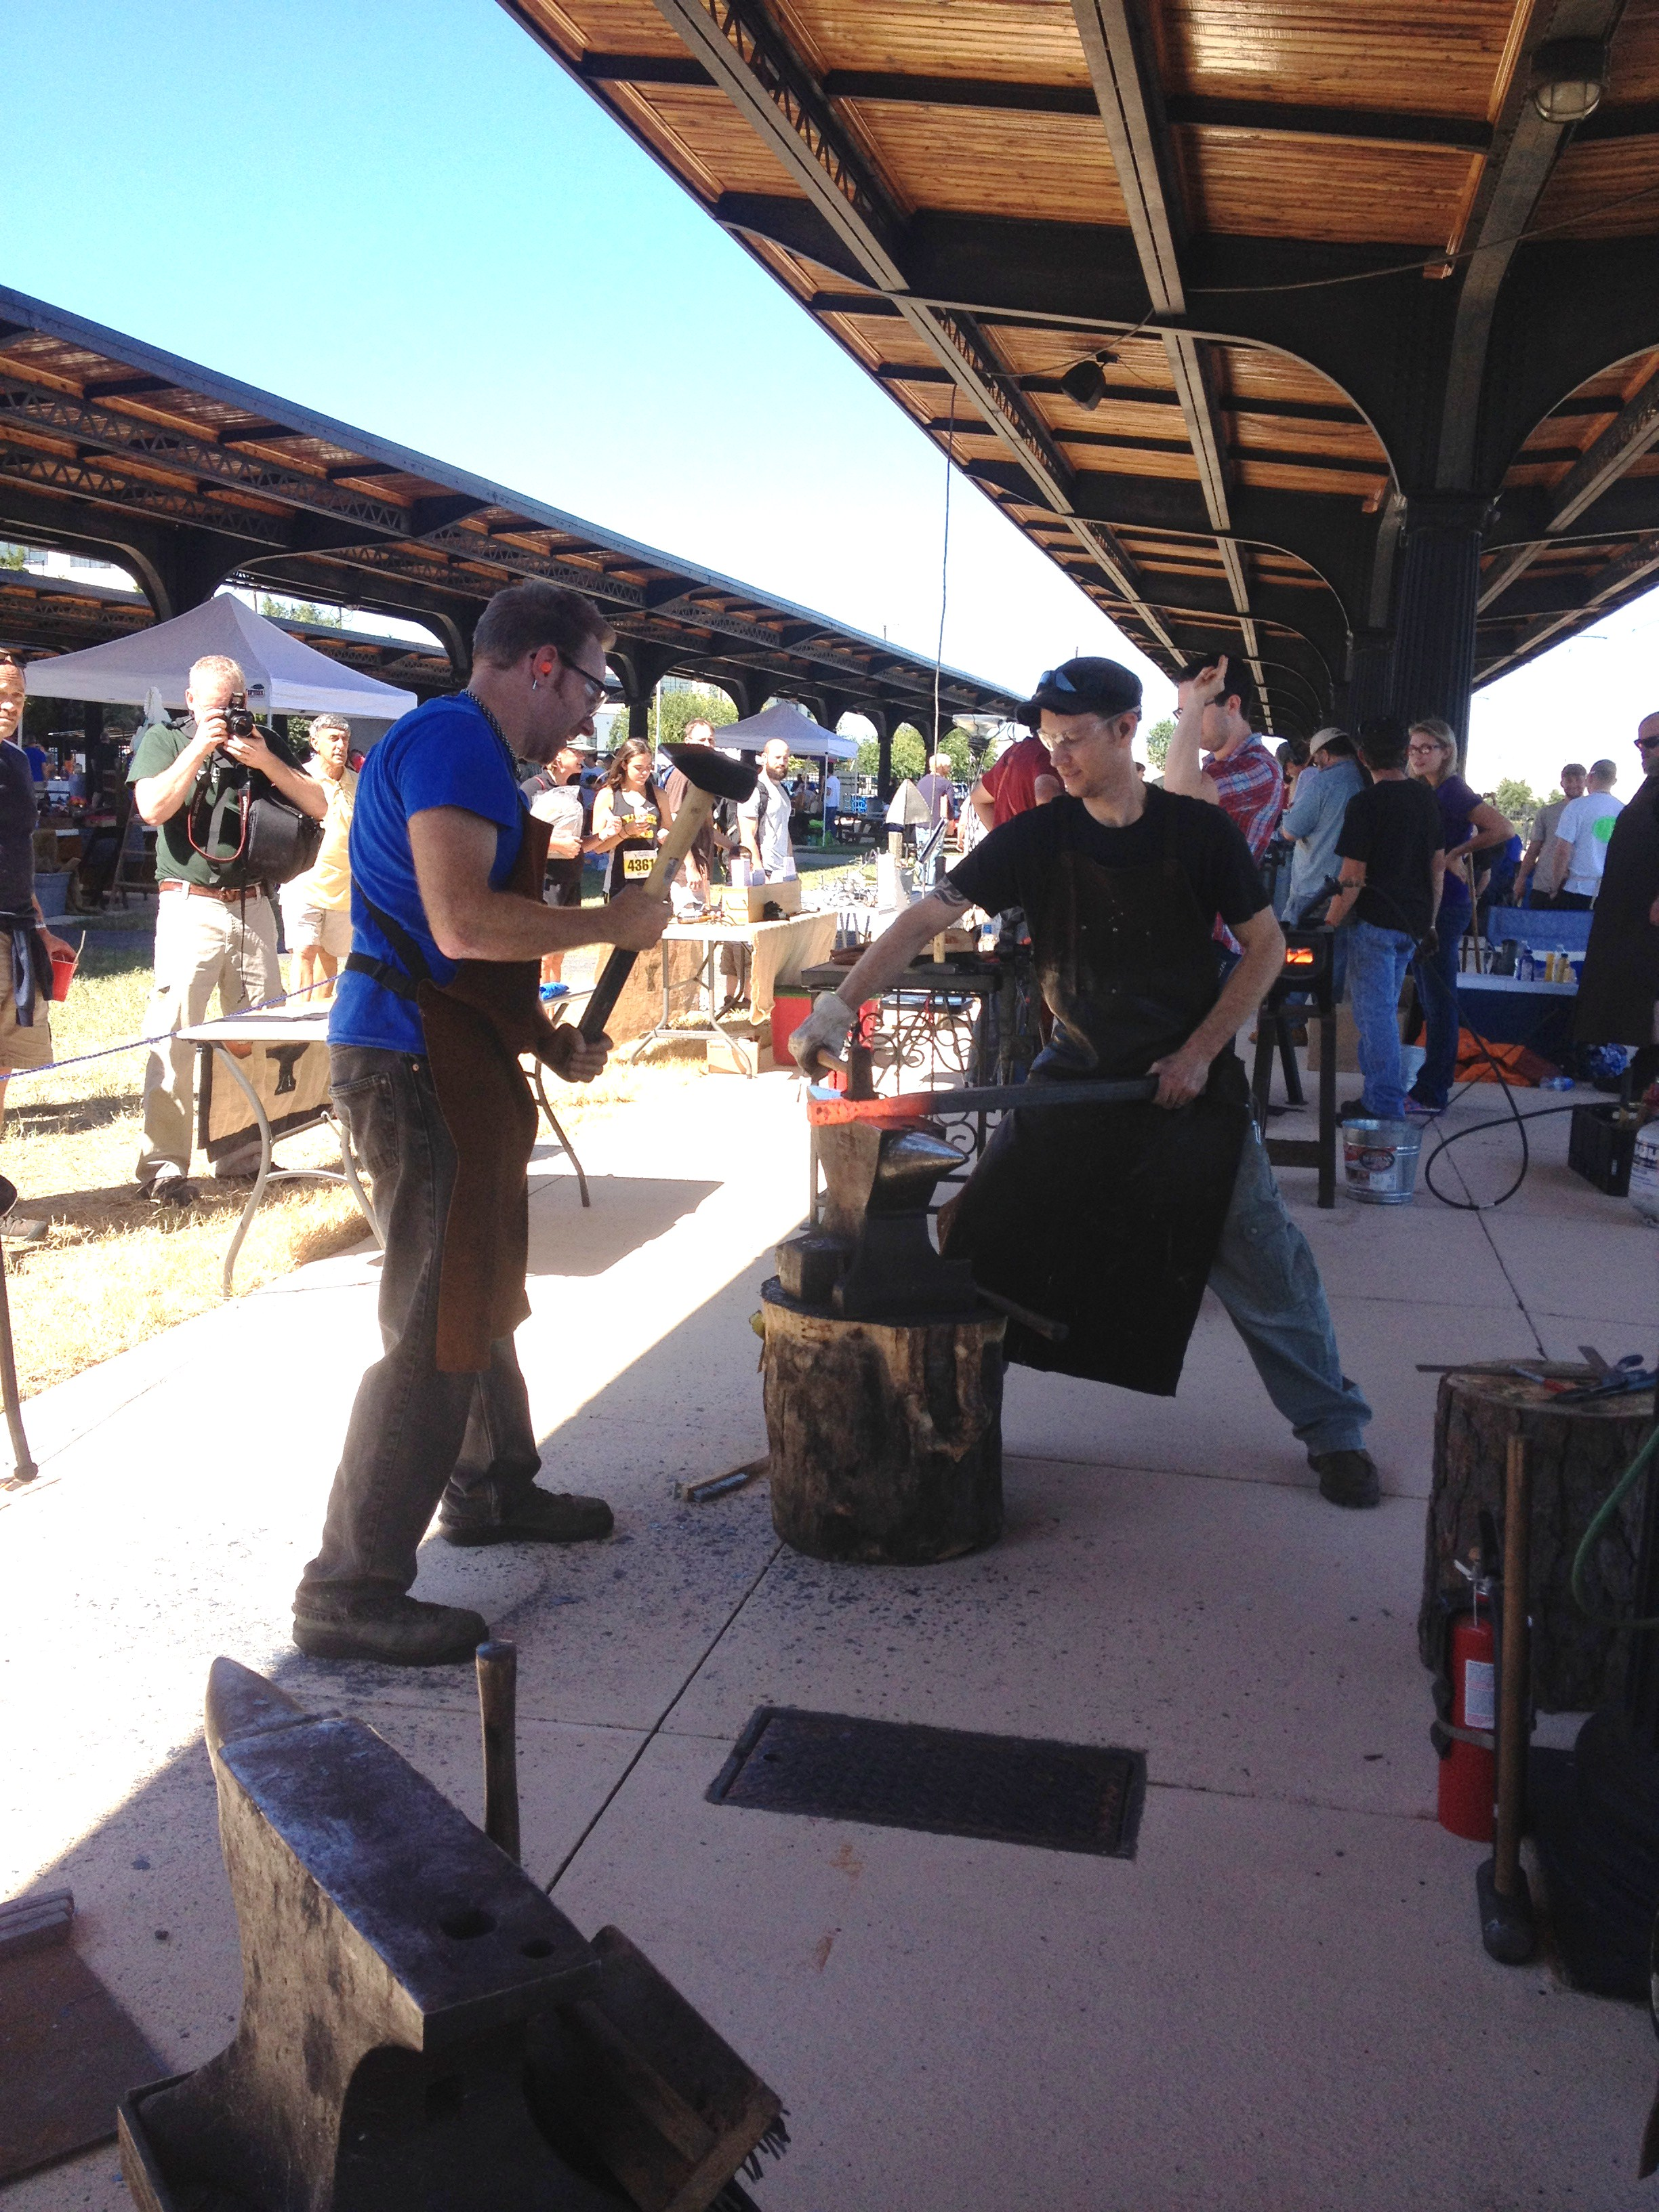 Kyle and friends, plus the gang from the  Central Virginia Blacksmith Guild , spent the day demonstrating at the anvil.